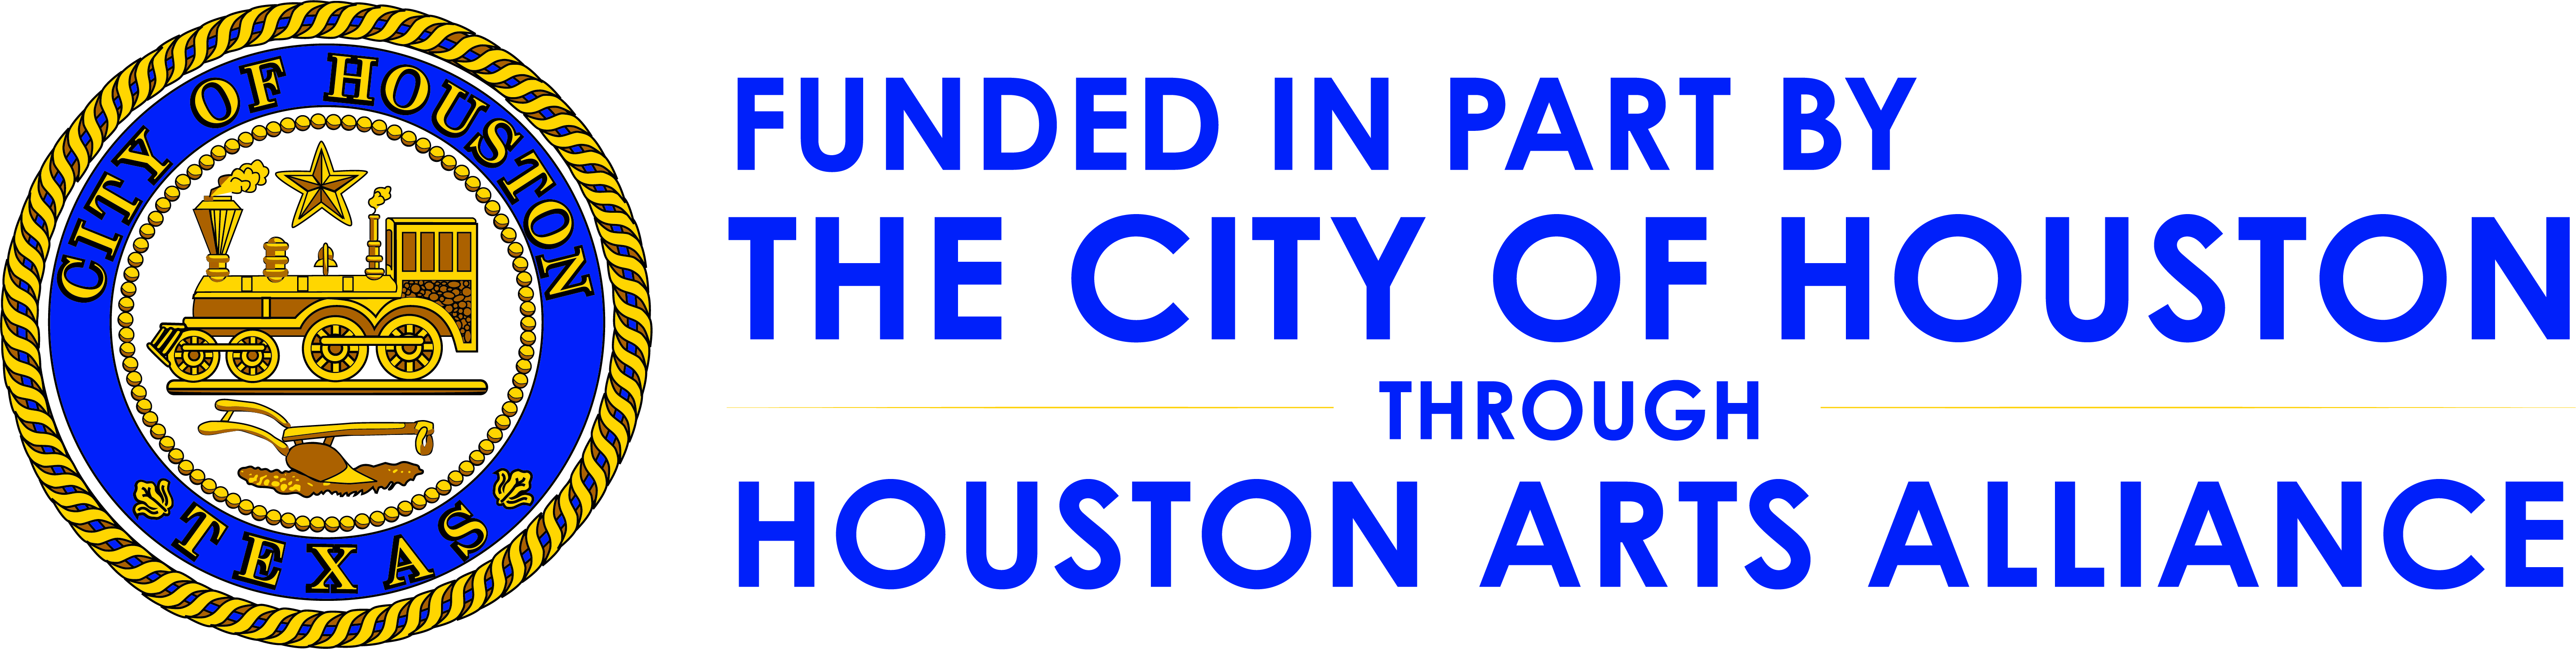 The City of Houston through Houston Arts Alliance